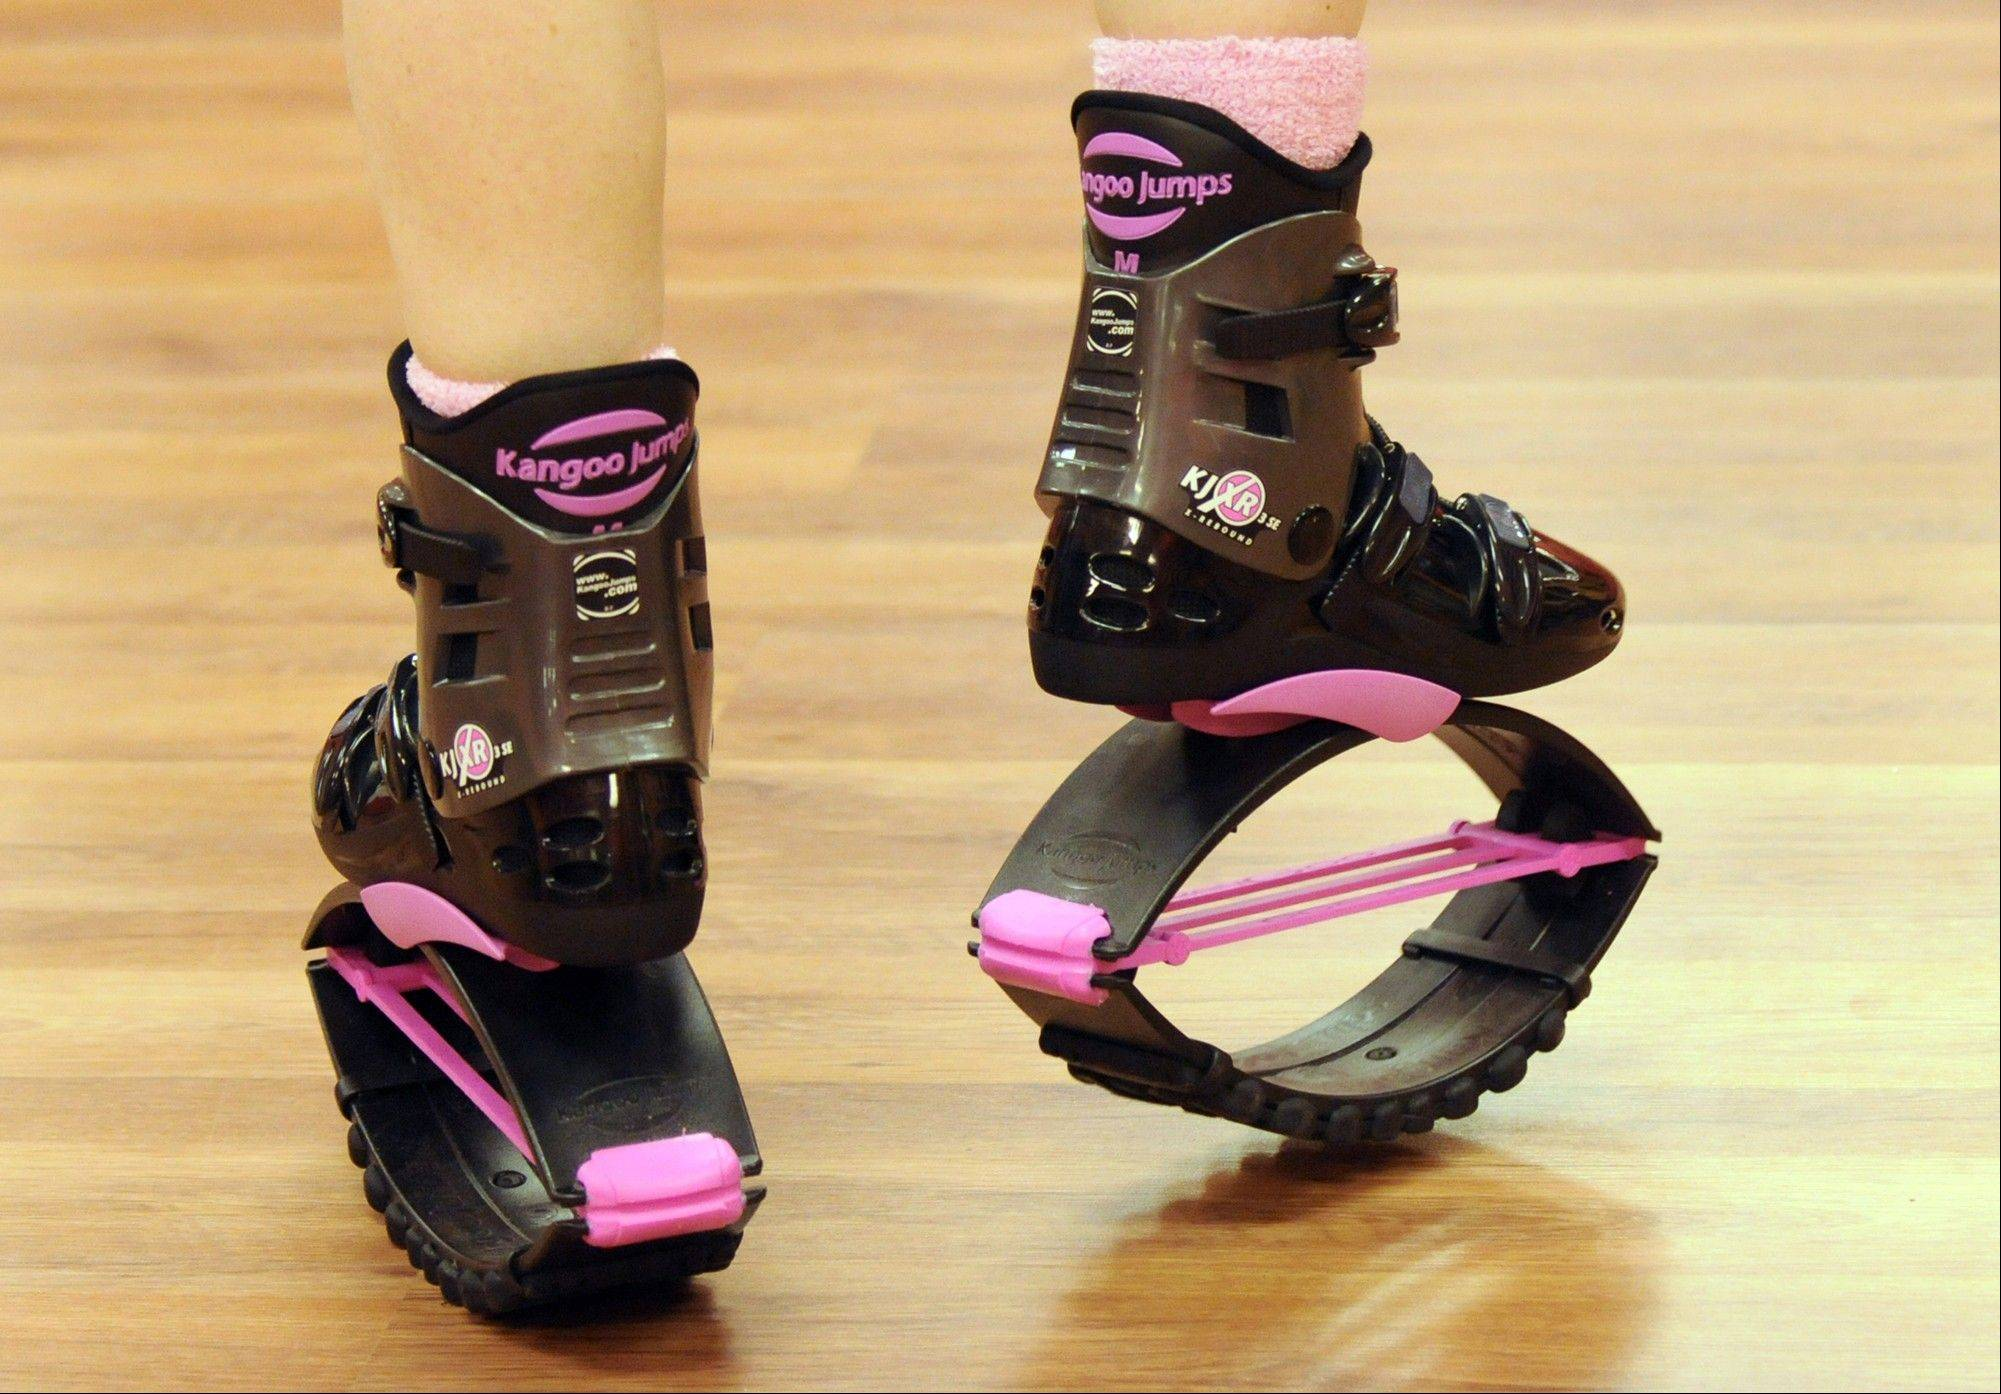 Fitness expert Mario Godiva Green demonstrates Kangoo Jumps, a new exercise routine that uses special boots.